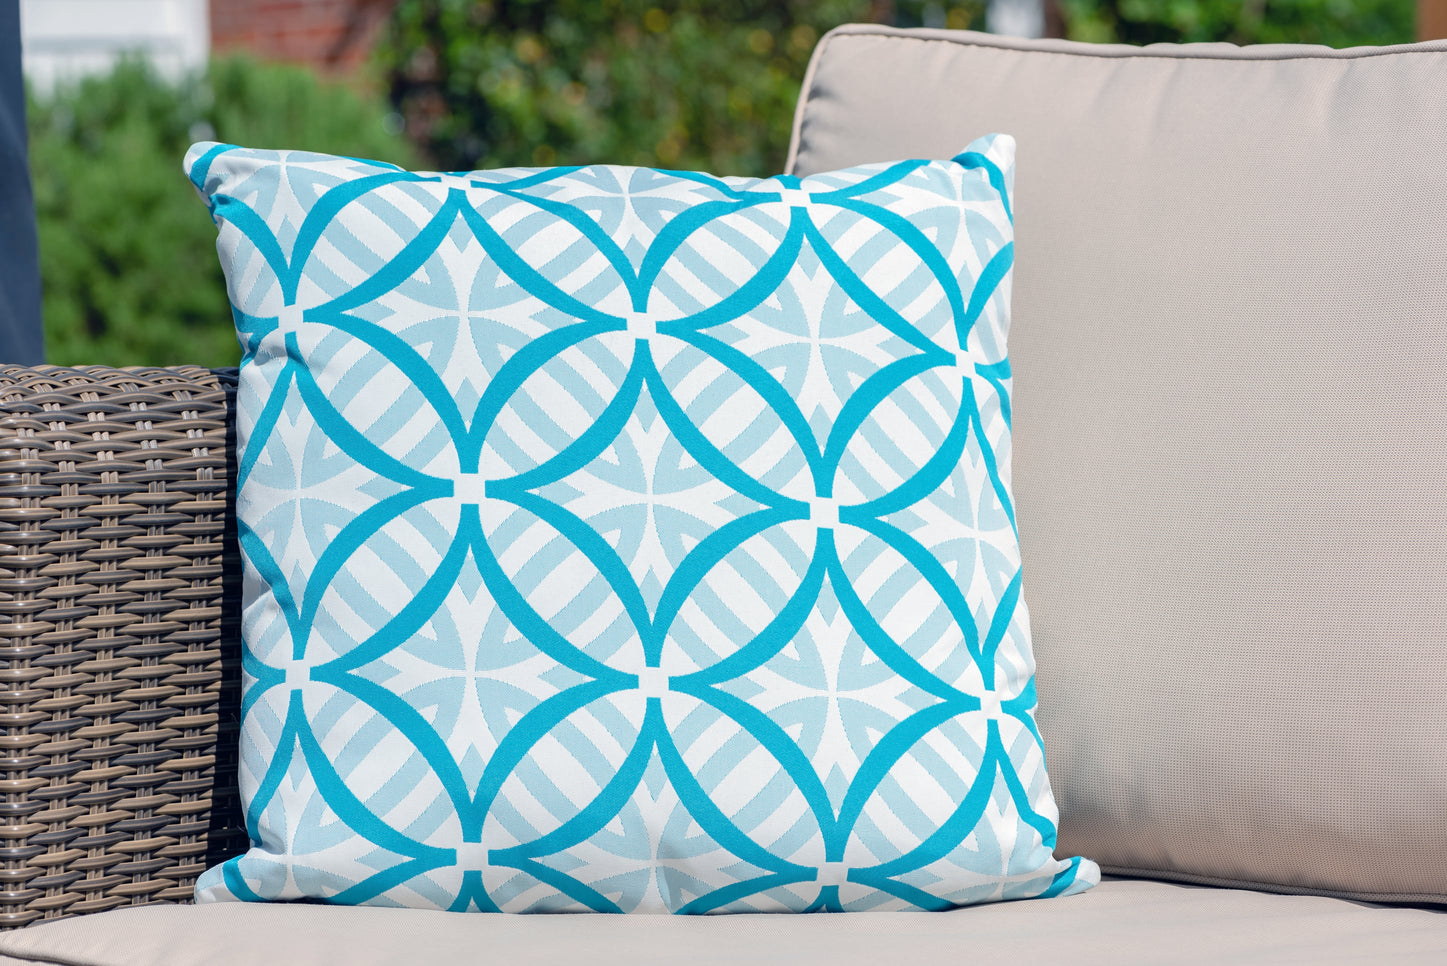 Luxury Cushion in Coolum Turquoise